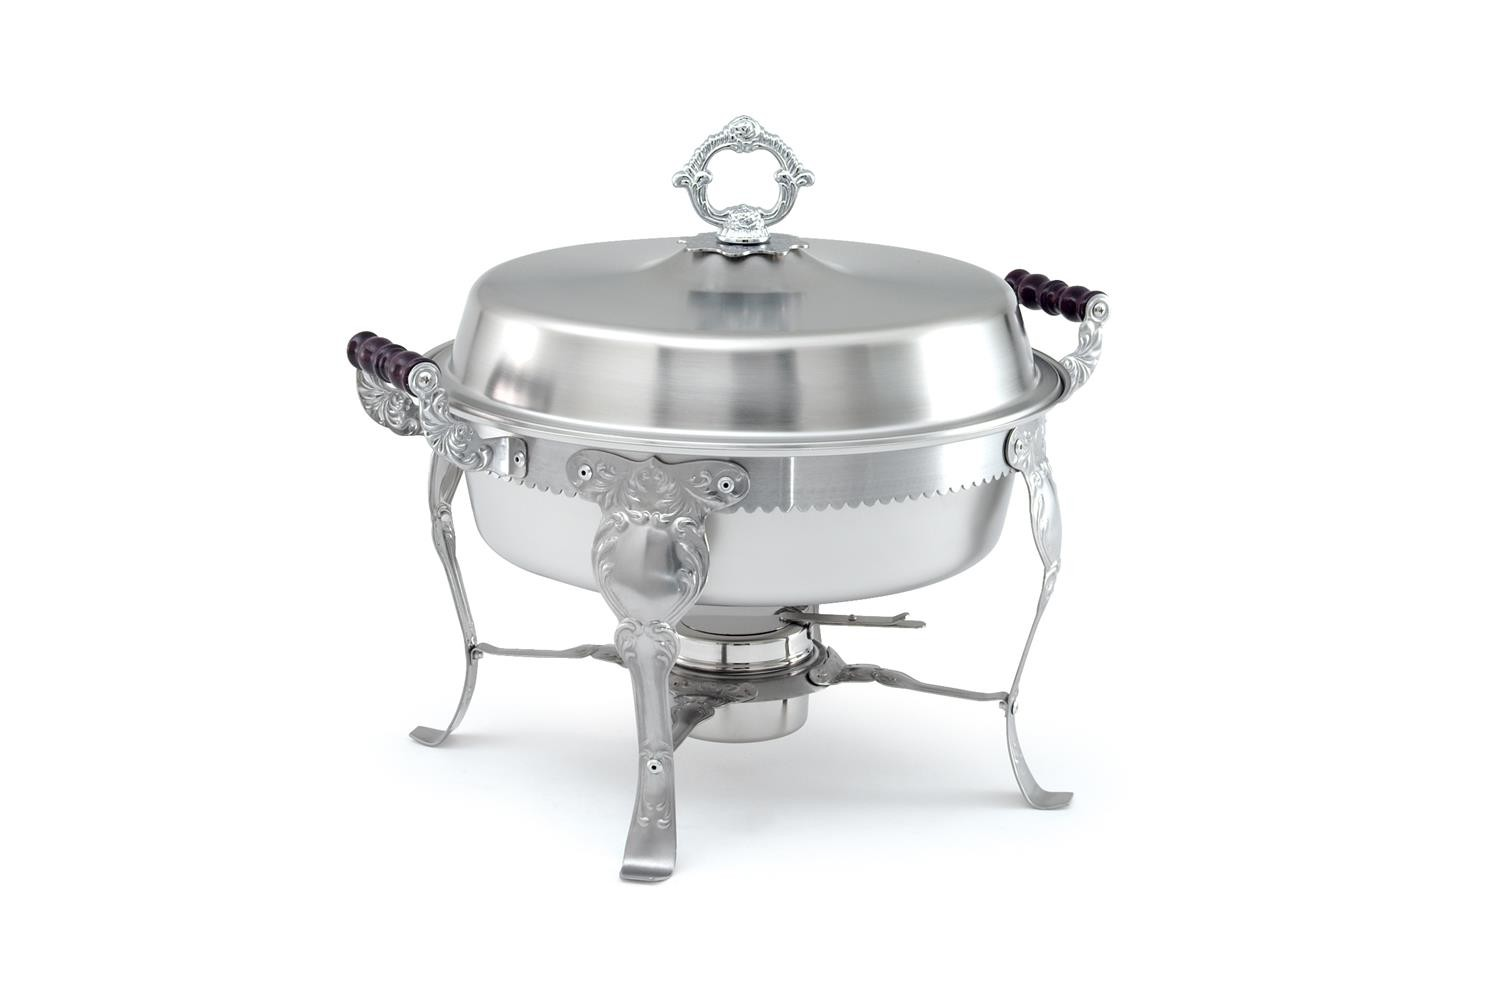 Vollrath 46860 Royal Crest Round Chafer with Wood Handles 6 Qt.